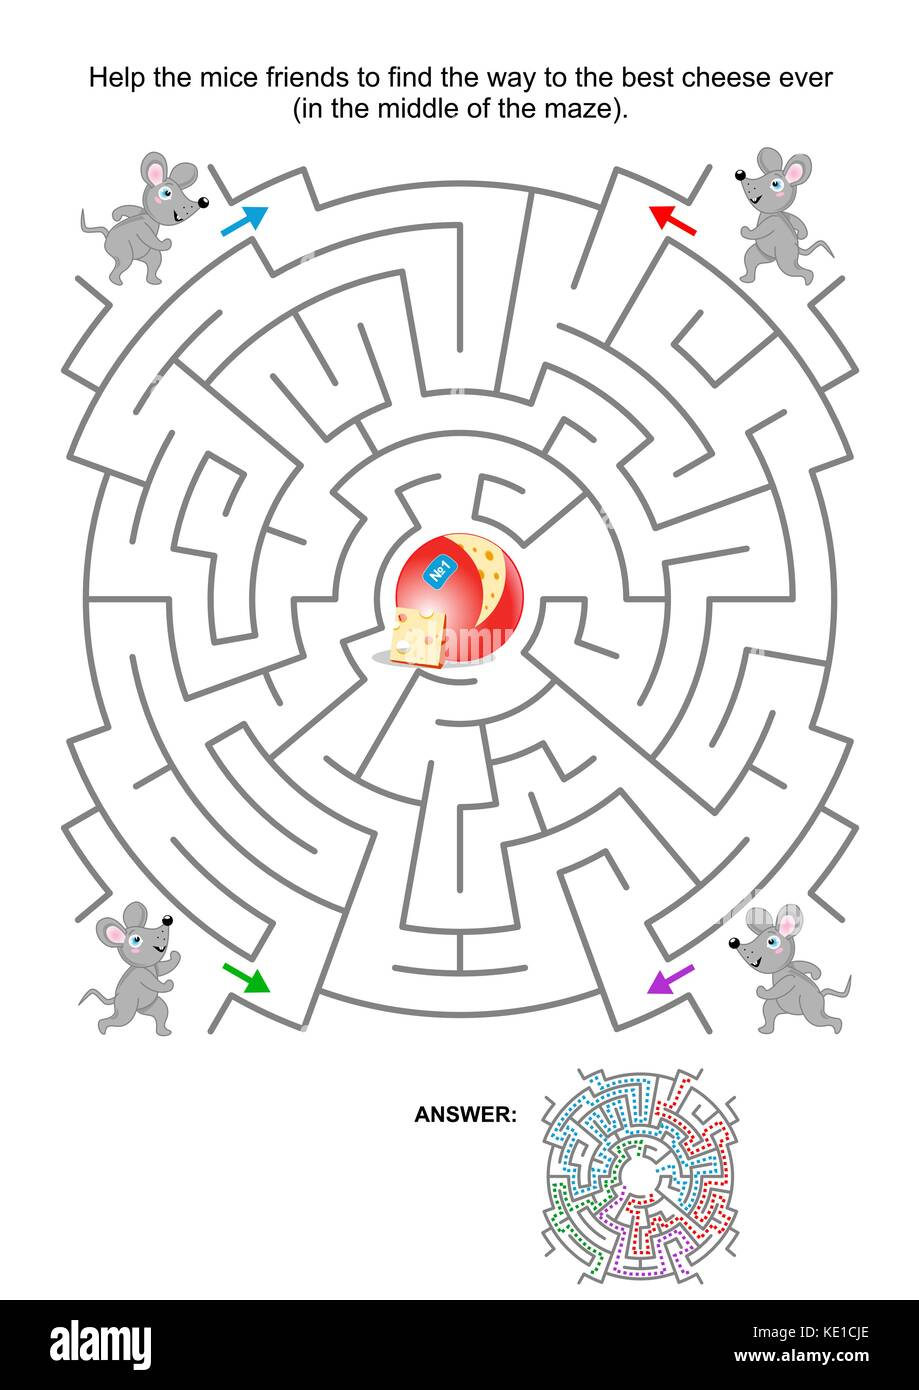 Maze game for kids: Help the mice friends find the way to the best cheese ever. Answer included. - Stock Image